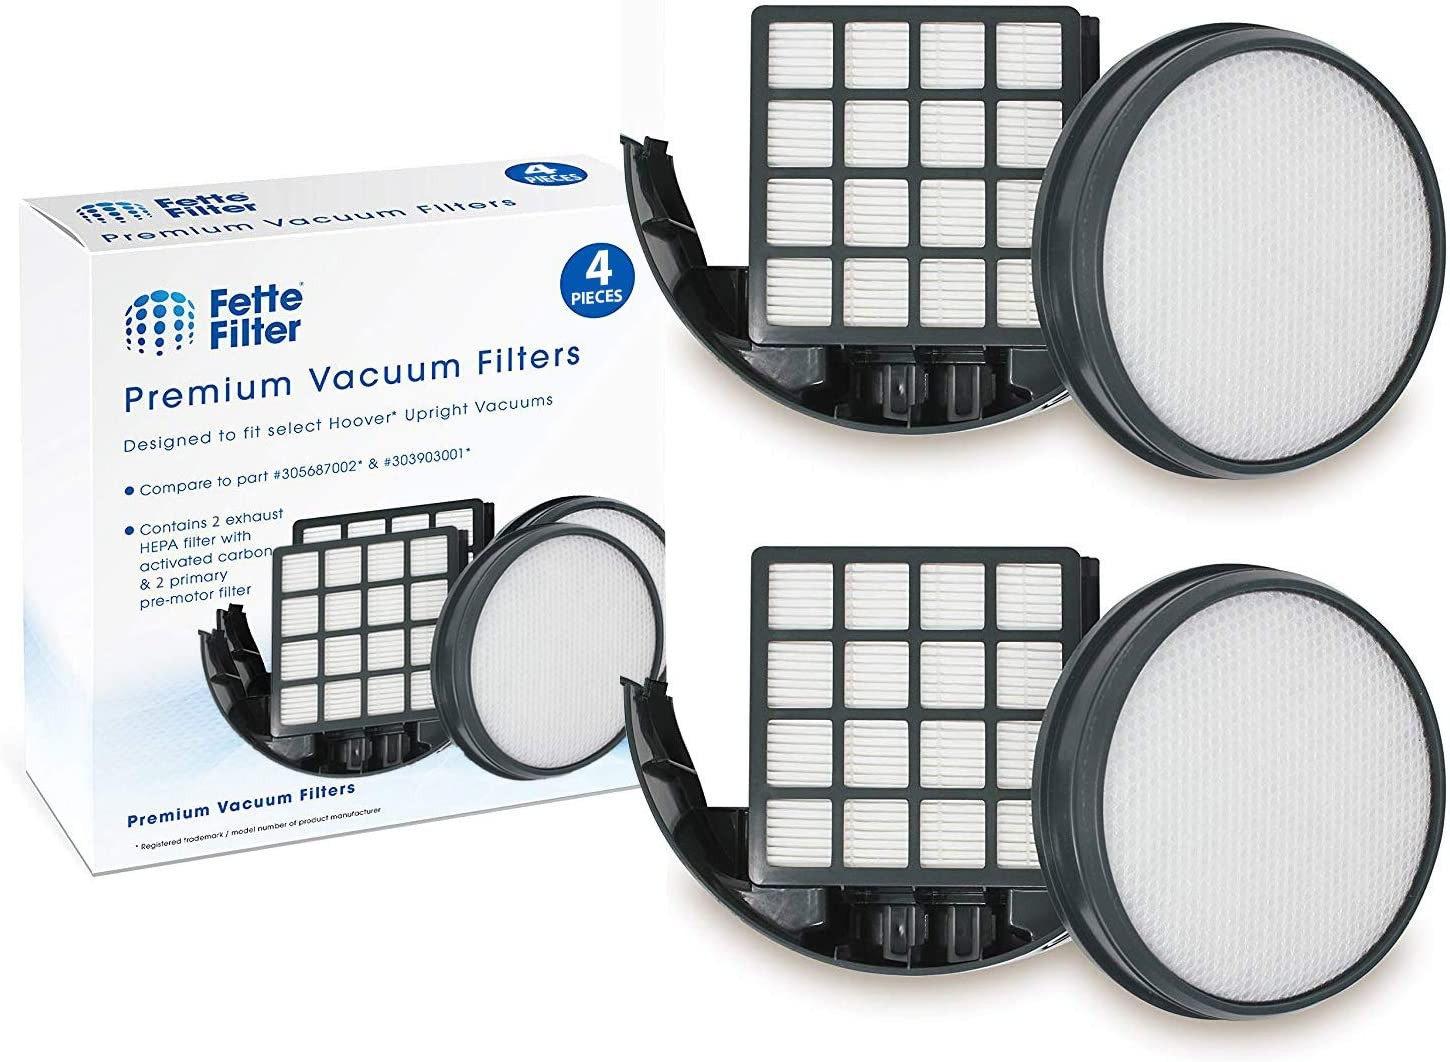 Fette Filter - Upright Vacuum Filter Kit Compatible with Hoover WindTunnel 3 Pro Pet. Compare to Part # 303903001 & 305687002. (Pack of 2)